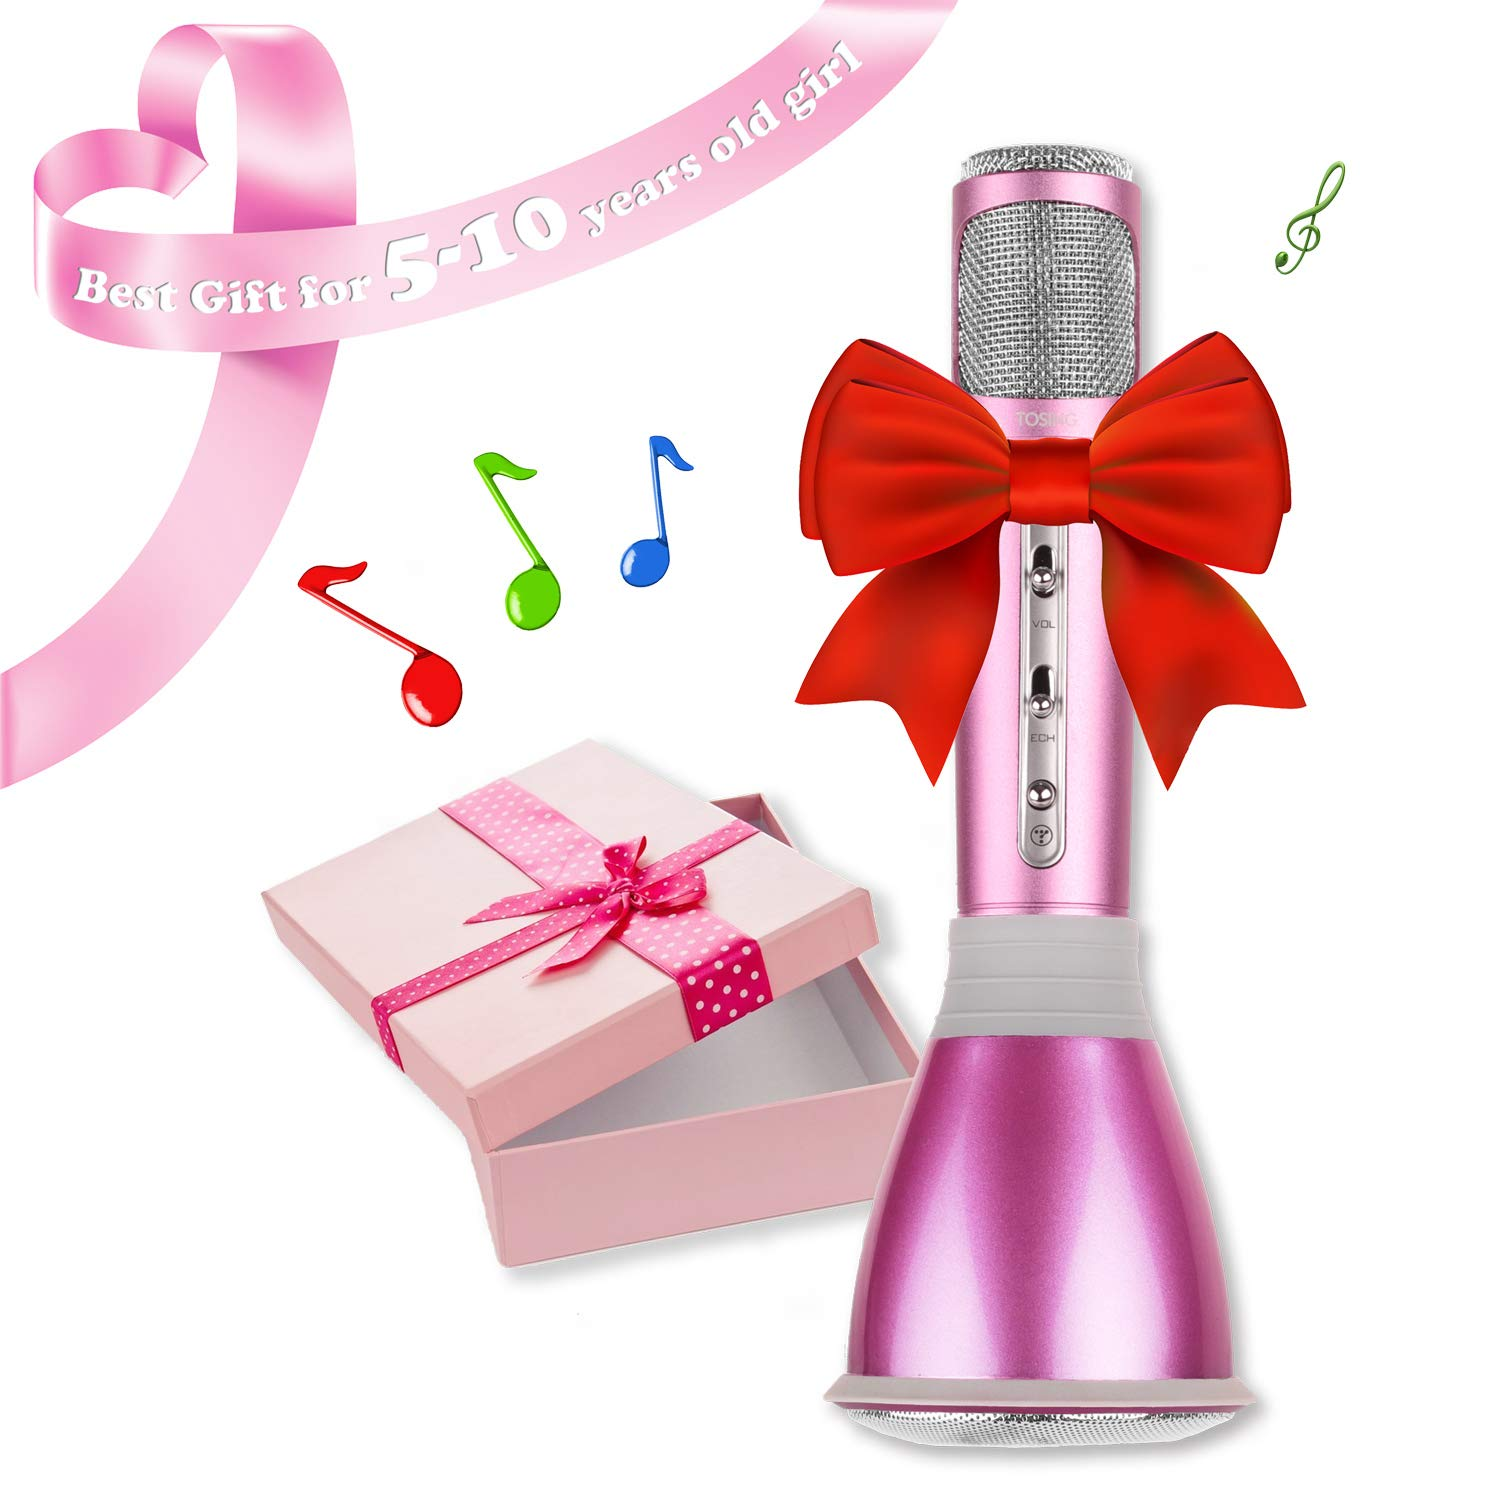 NeWisdom Top Christmas Birthday Gifts for Girls 2018, Age 5 to 13 ...